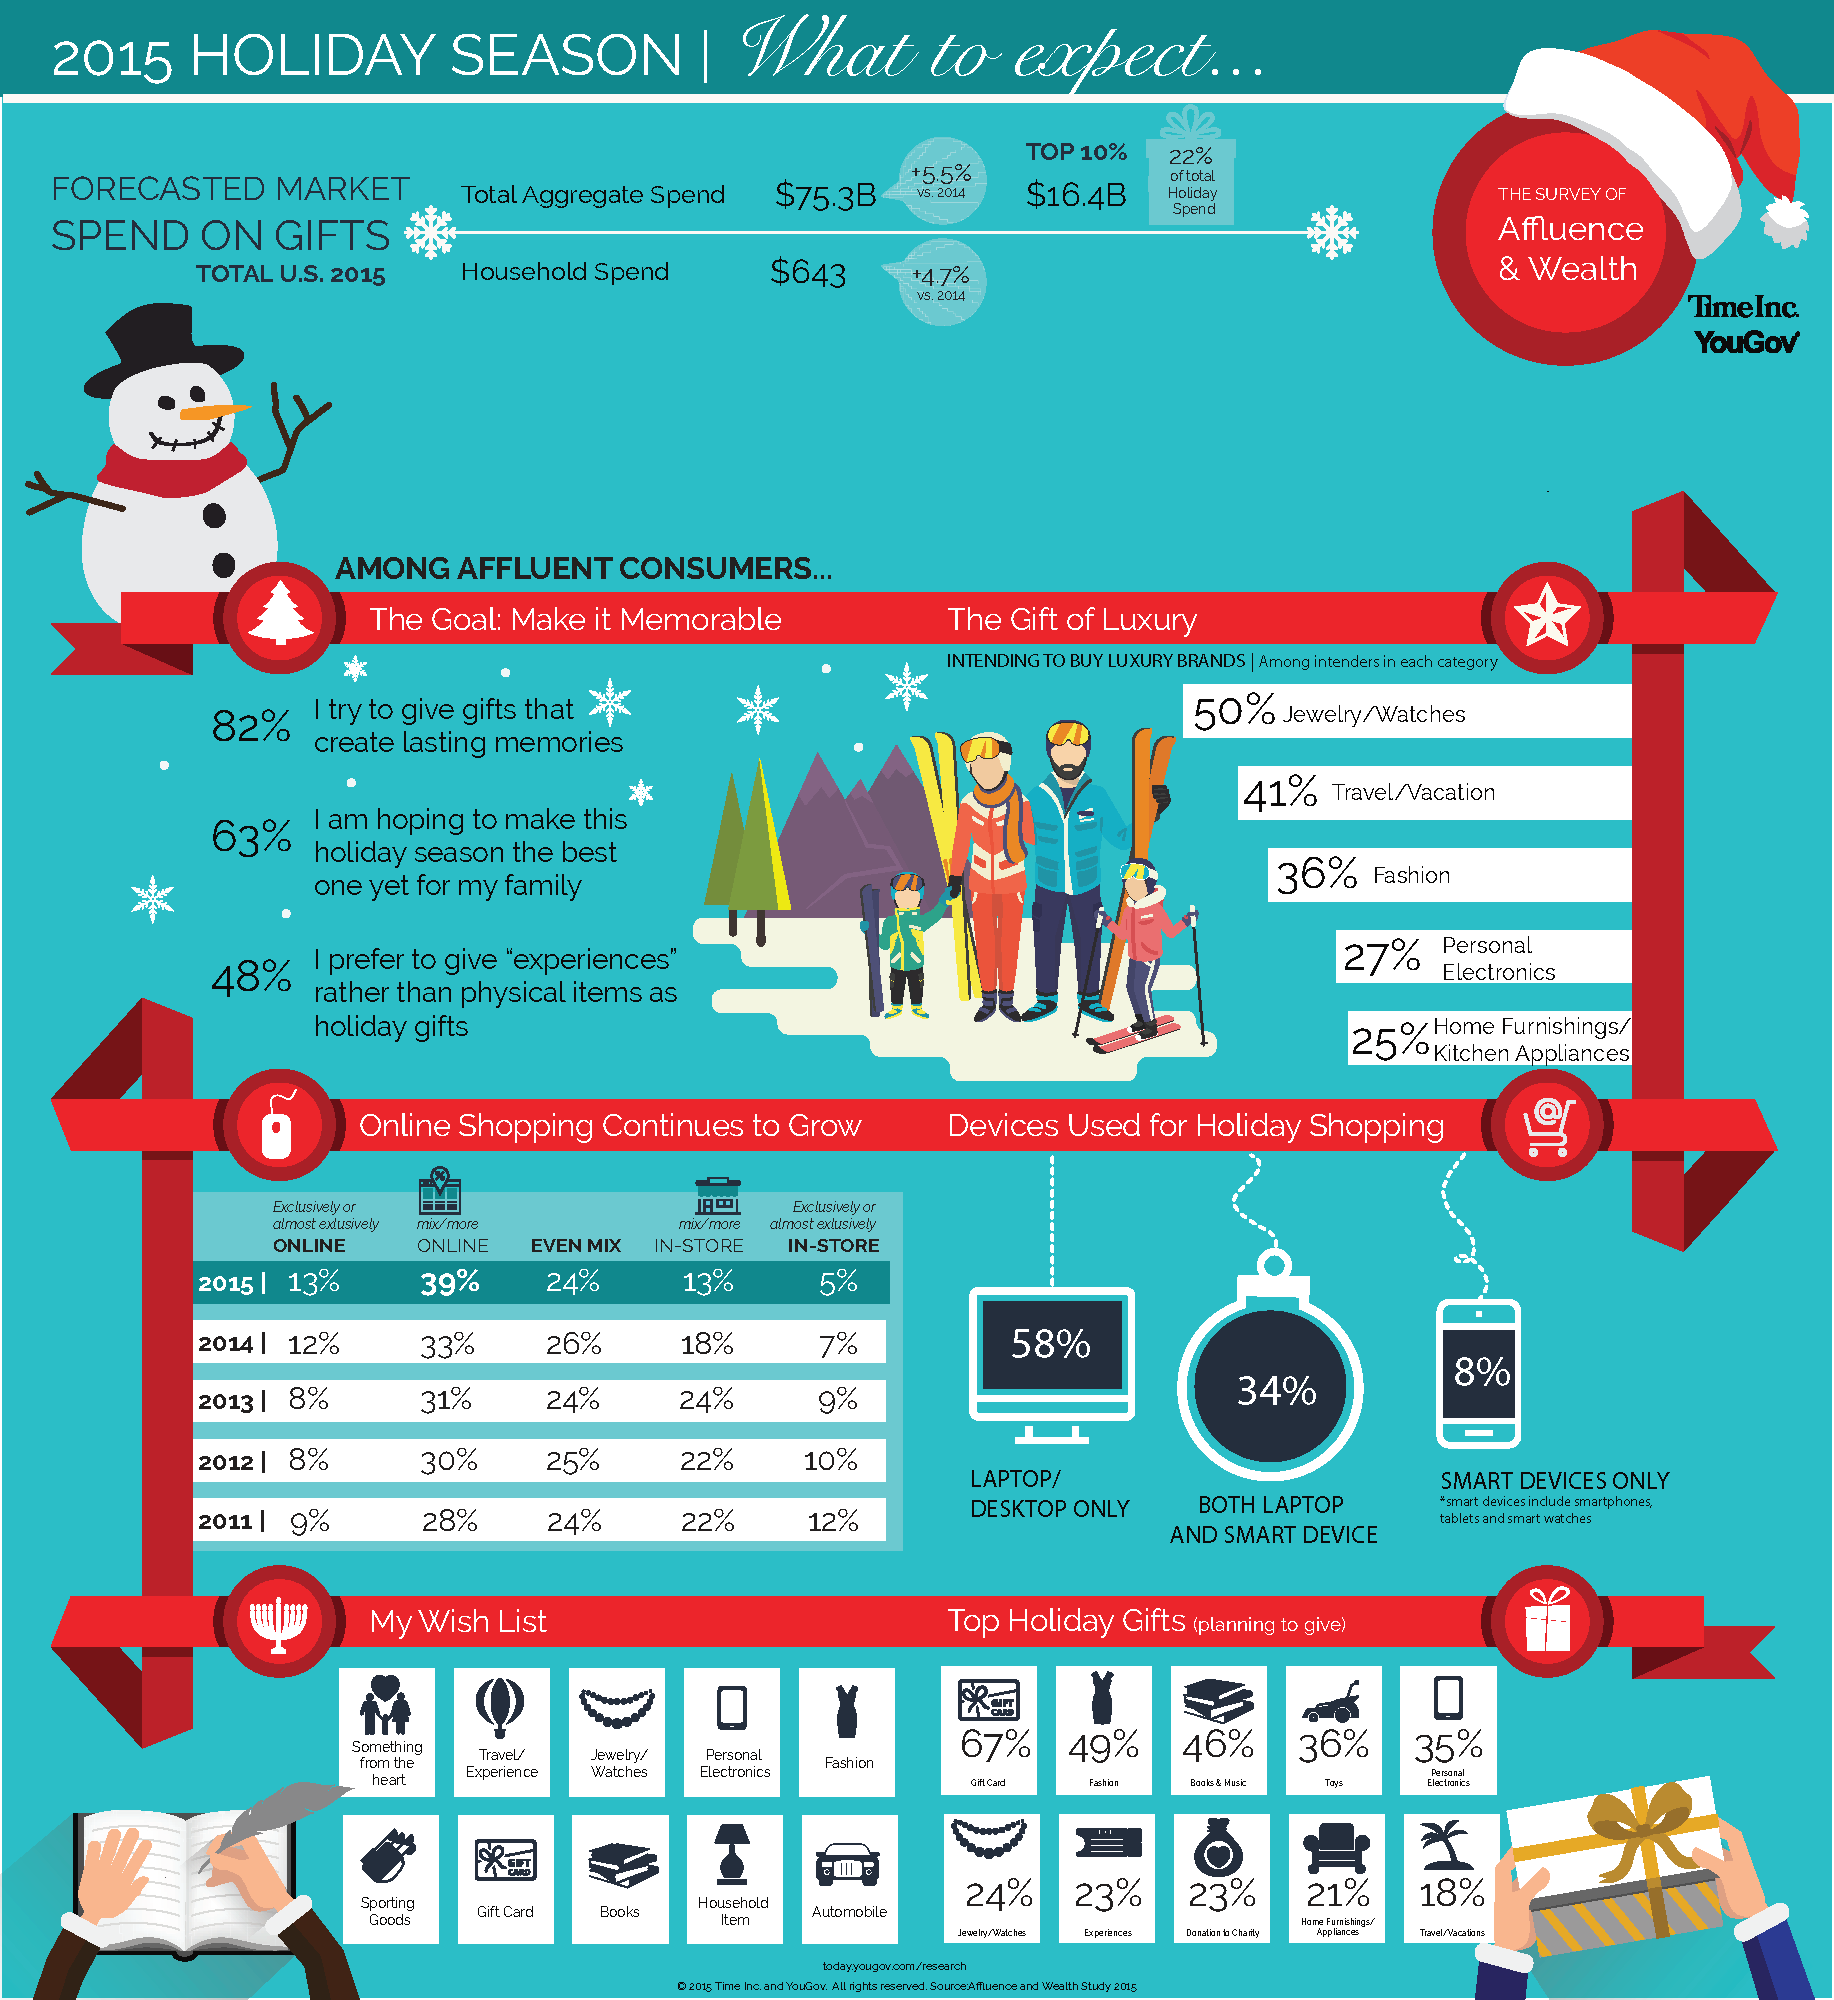 The YouGov Wealth Holiday Infographic